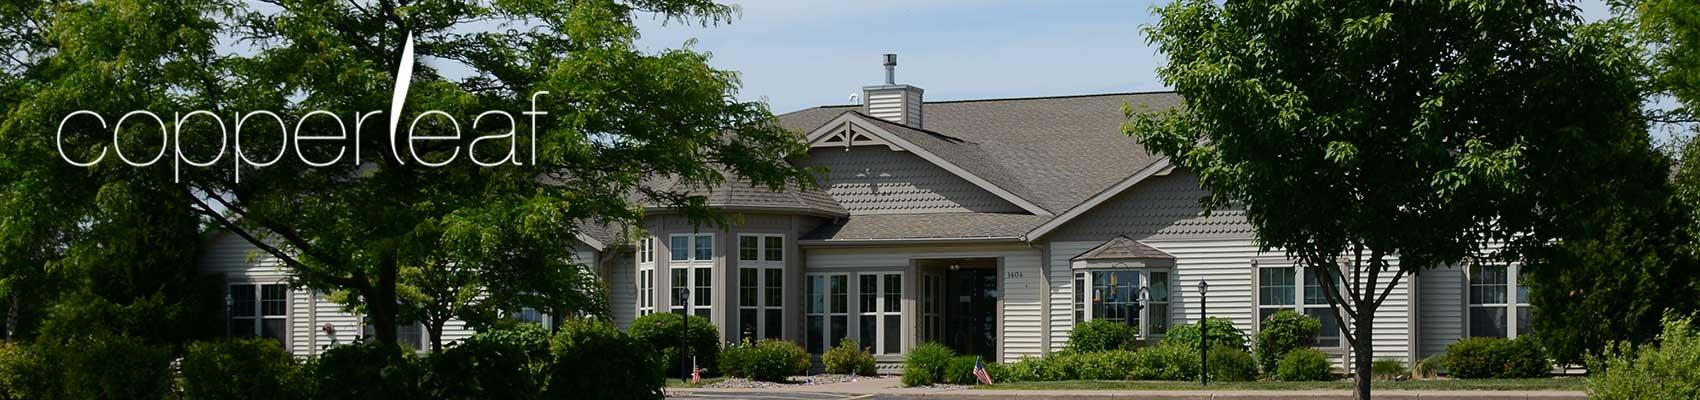 Assisted Living assisted living facilities Oak Center Wisconsin Fond du Lac County